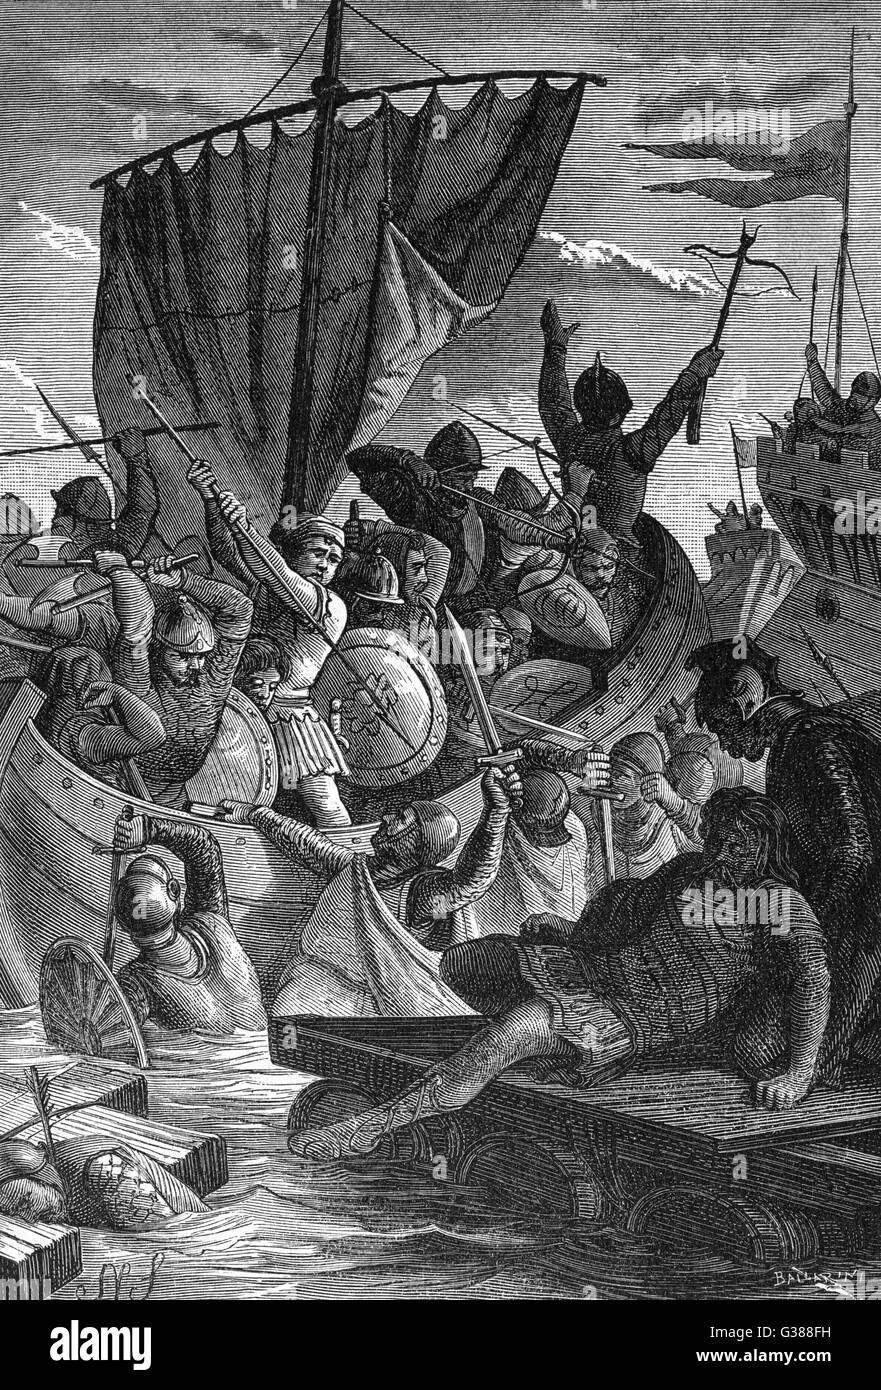 Venetians in conflict with the  Franks        Date: 787 - Stock Image